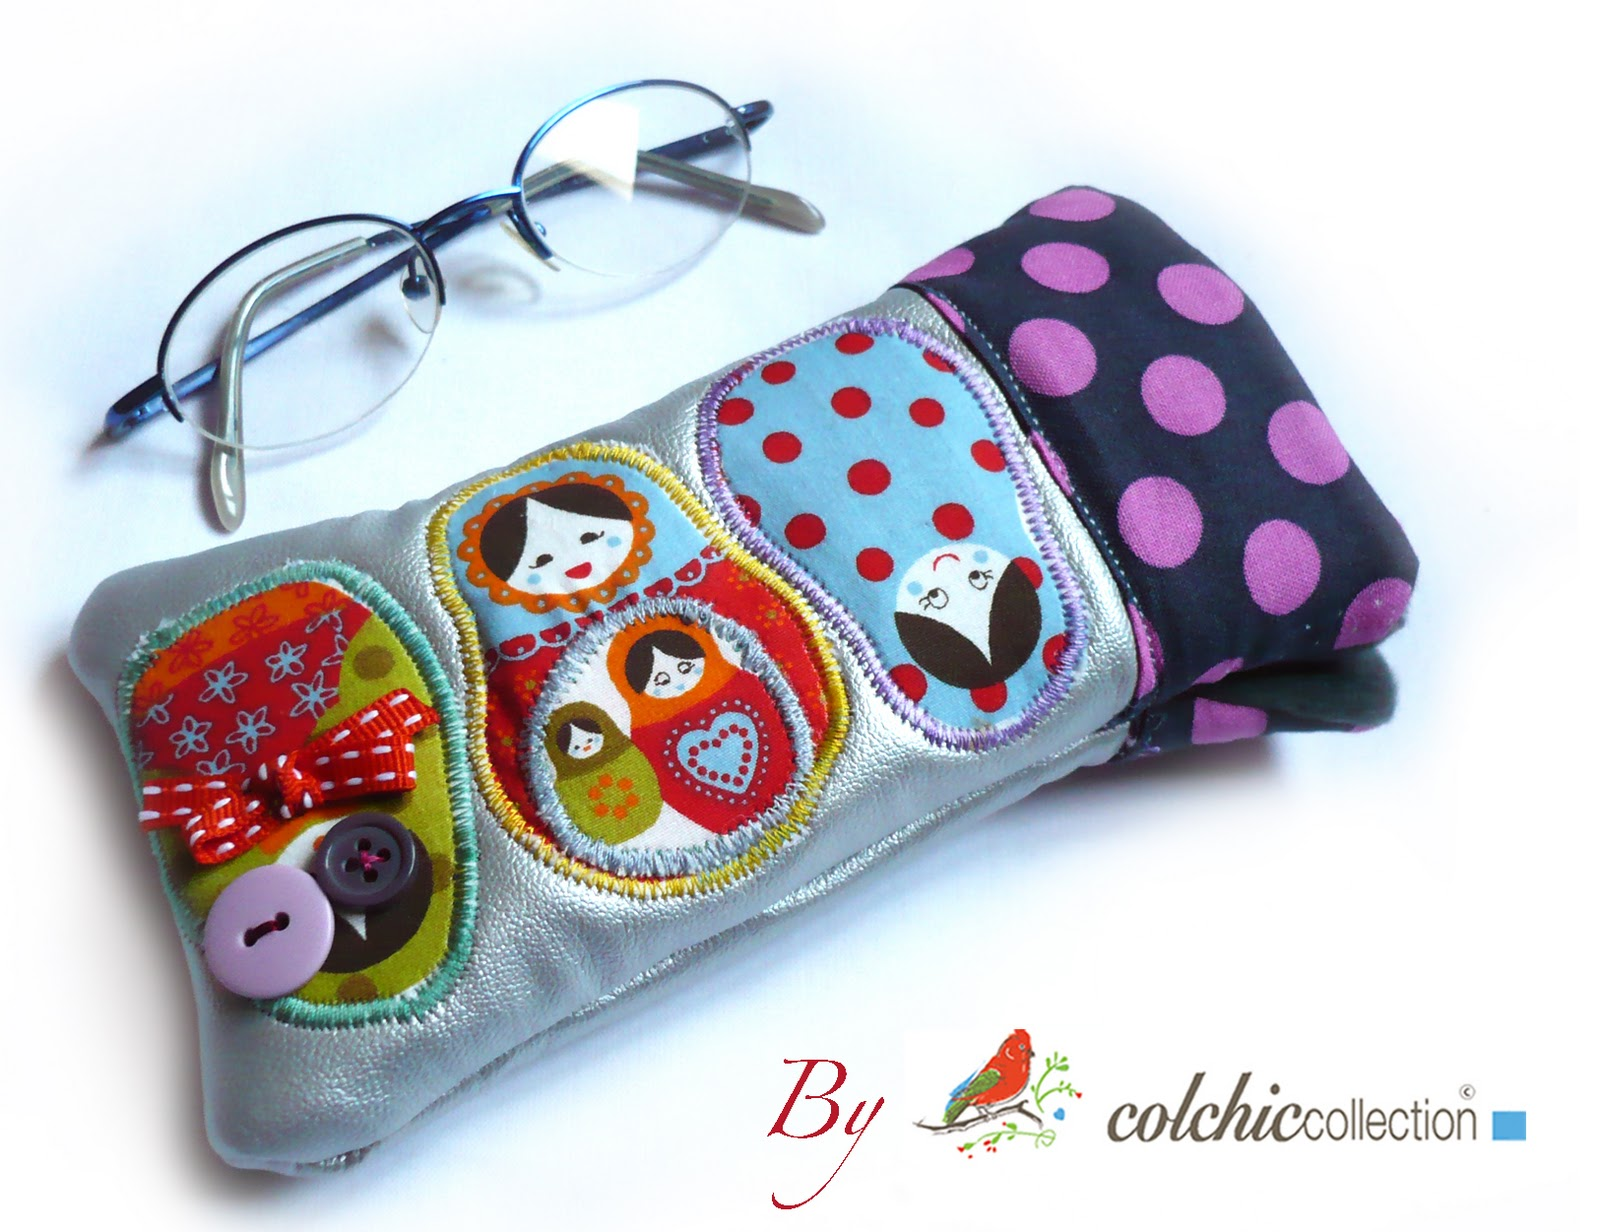 colchic collection  etui  u00e0 lunette  u2022 matriochka s u0026 39  family